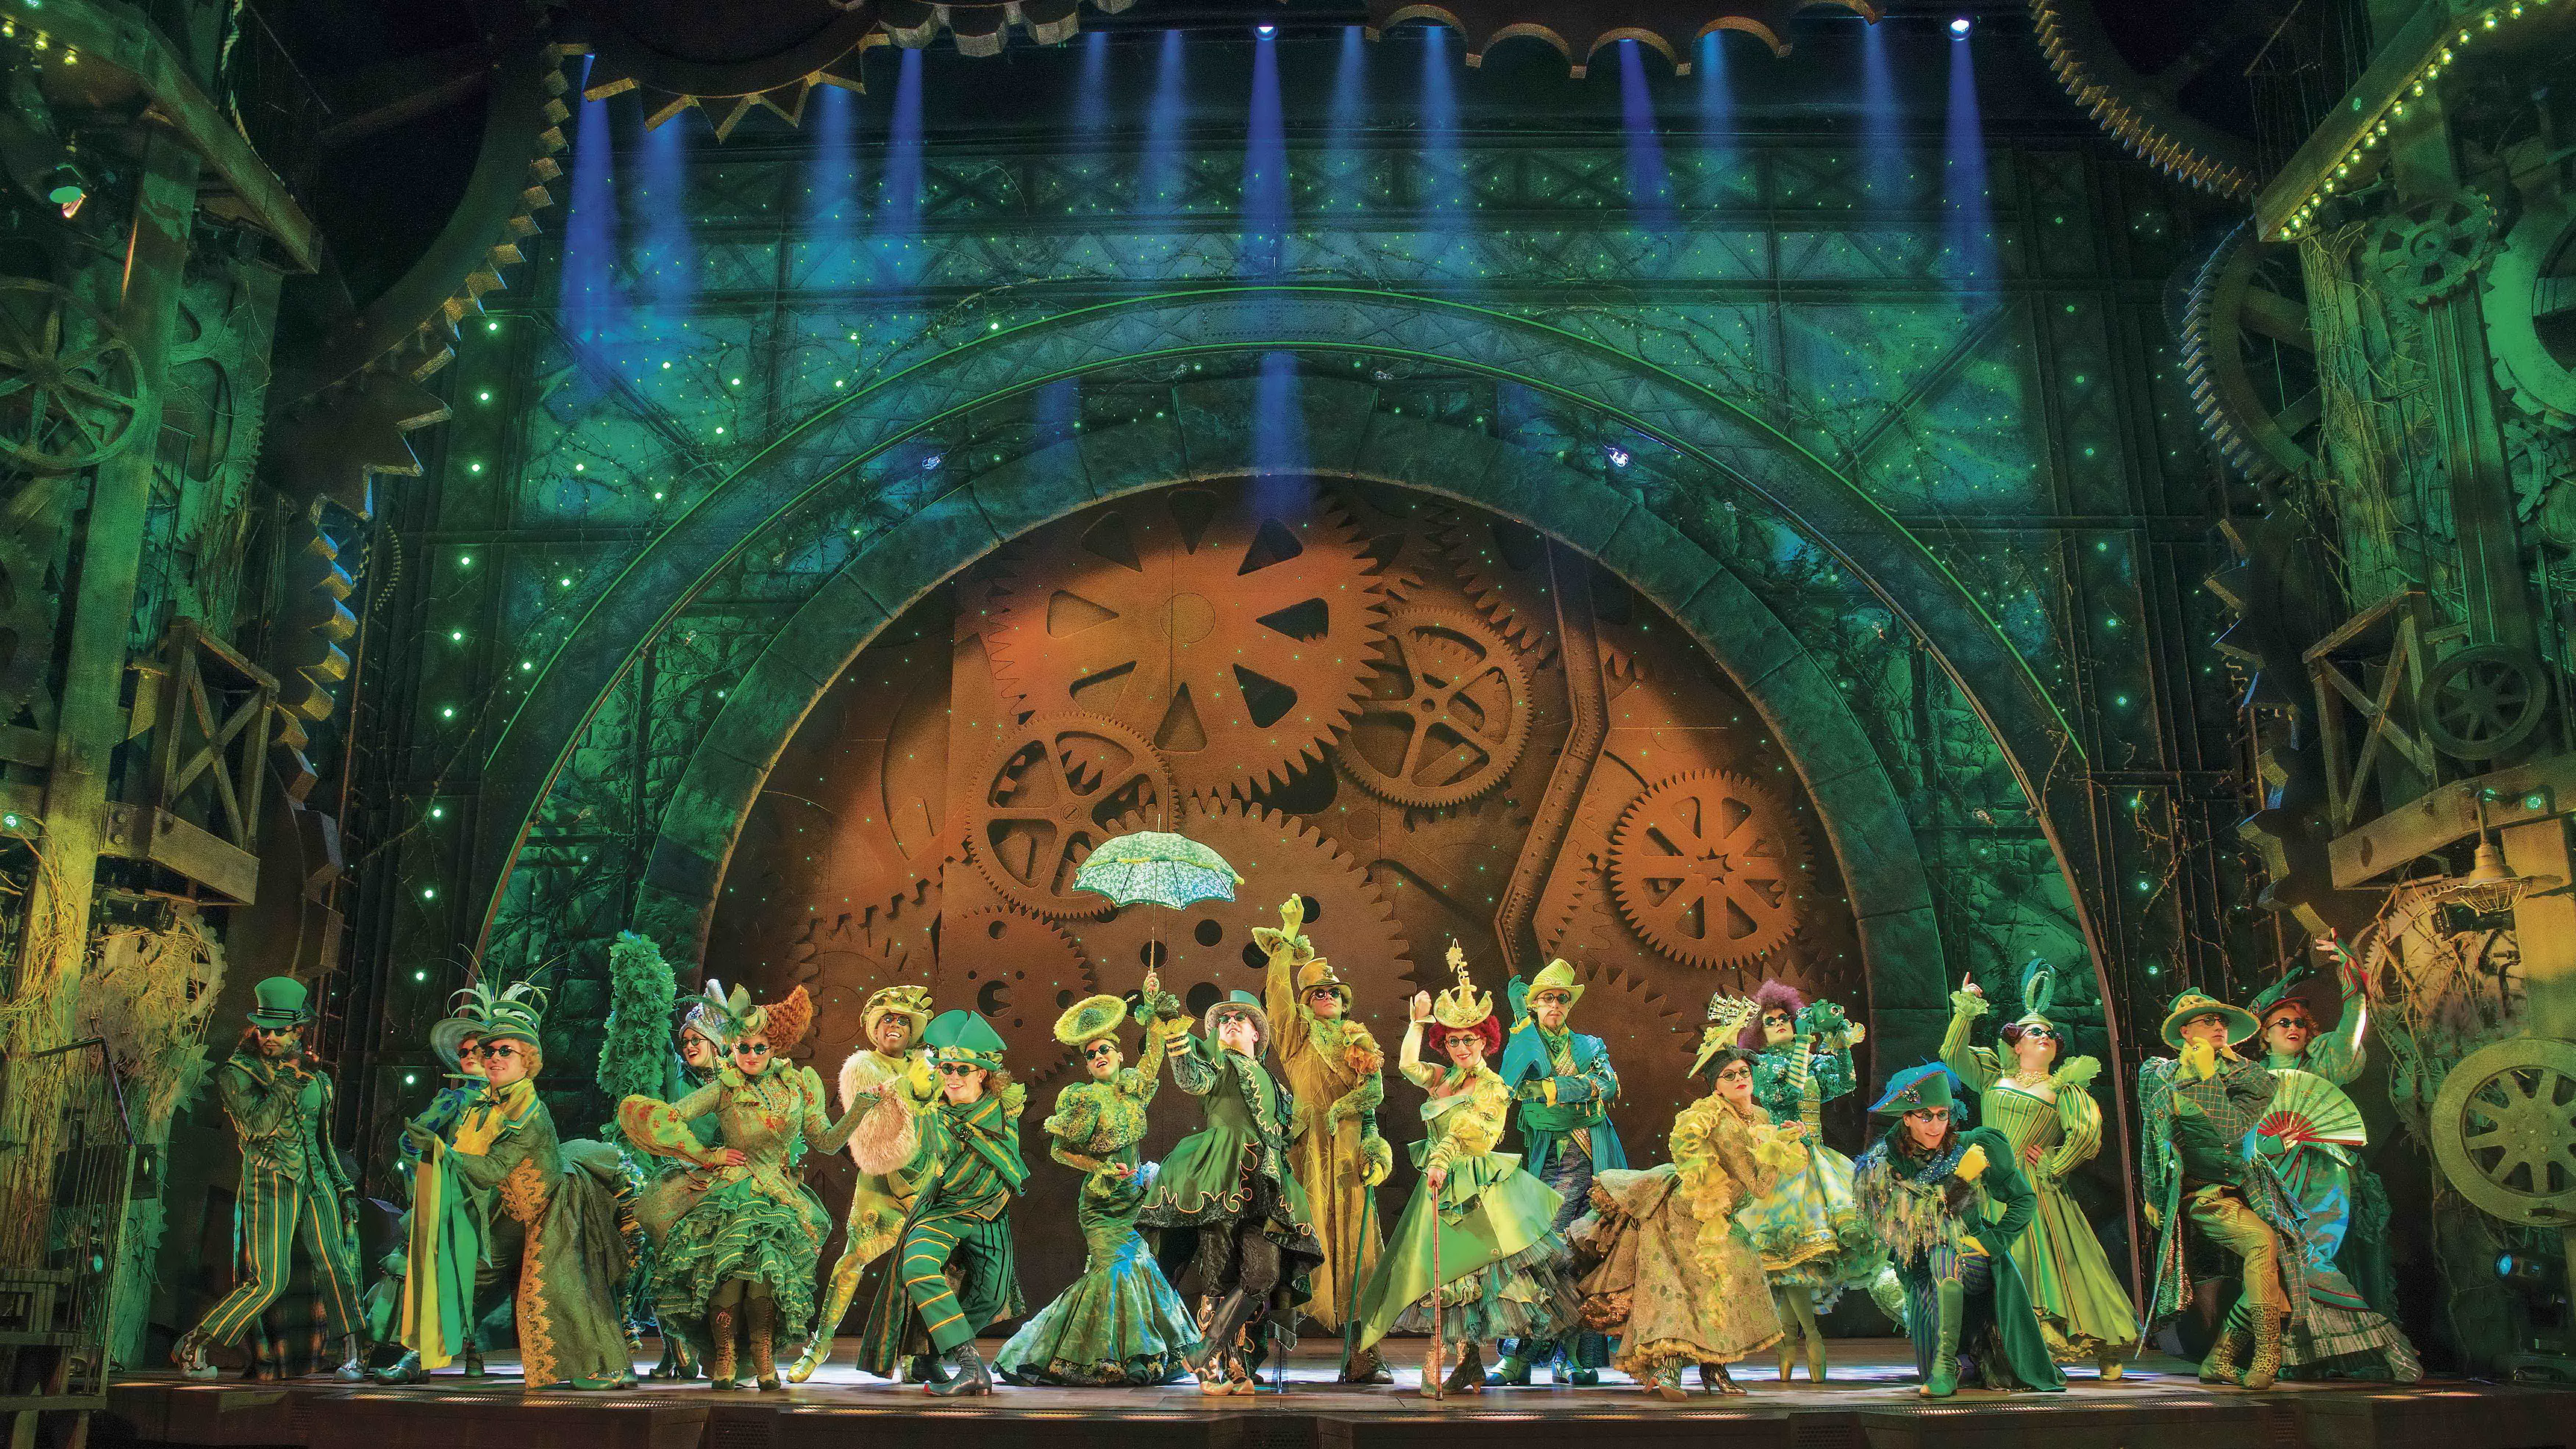 Wicked-UK-International-Tour_2013-2014-London-Company_photo-by-Matt-Crockett_6616_RT-fdabc3.jpg